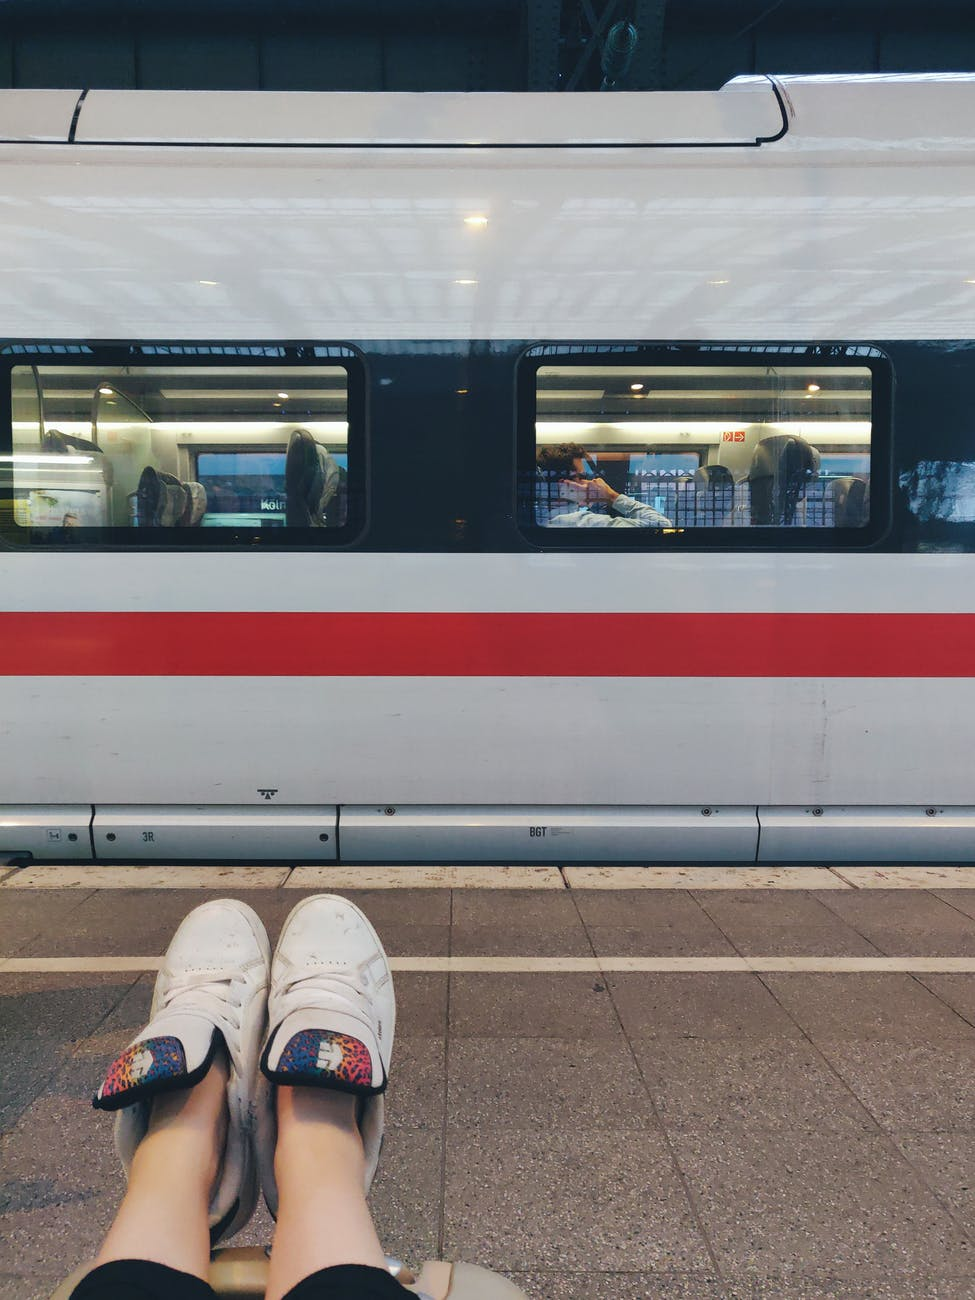 photo of person sitting on floor near train